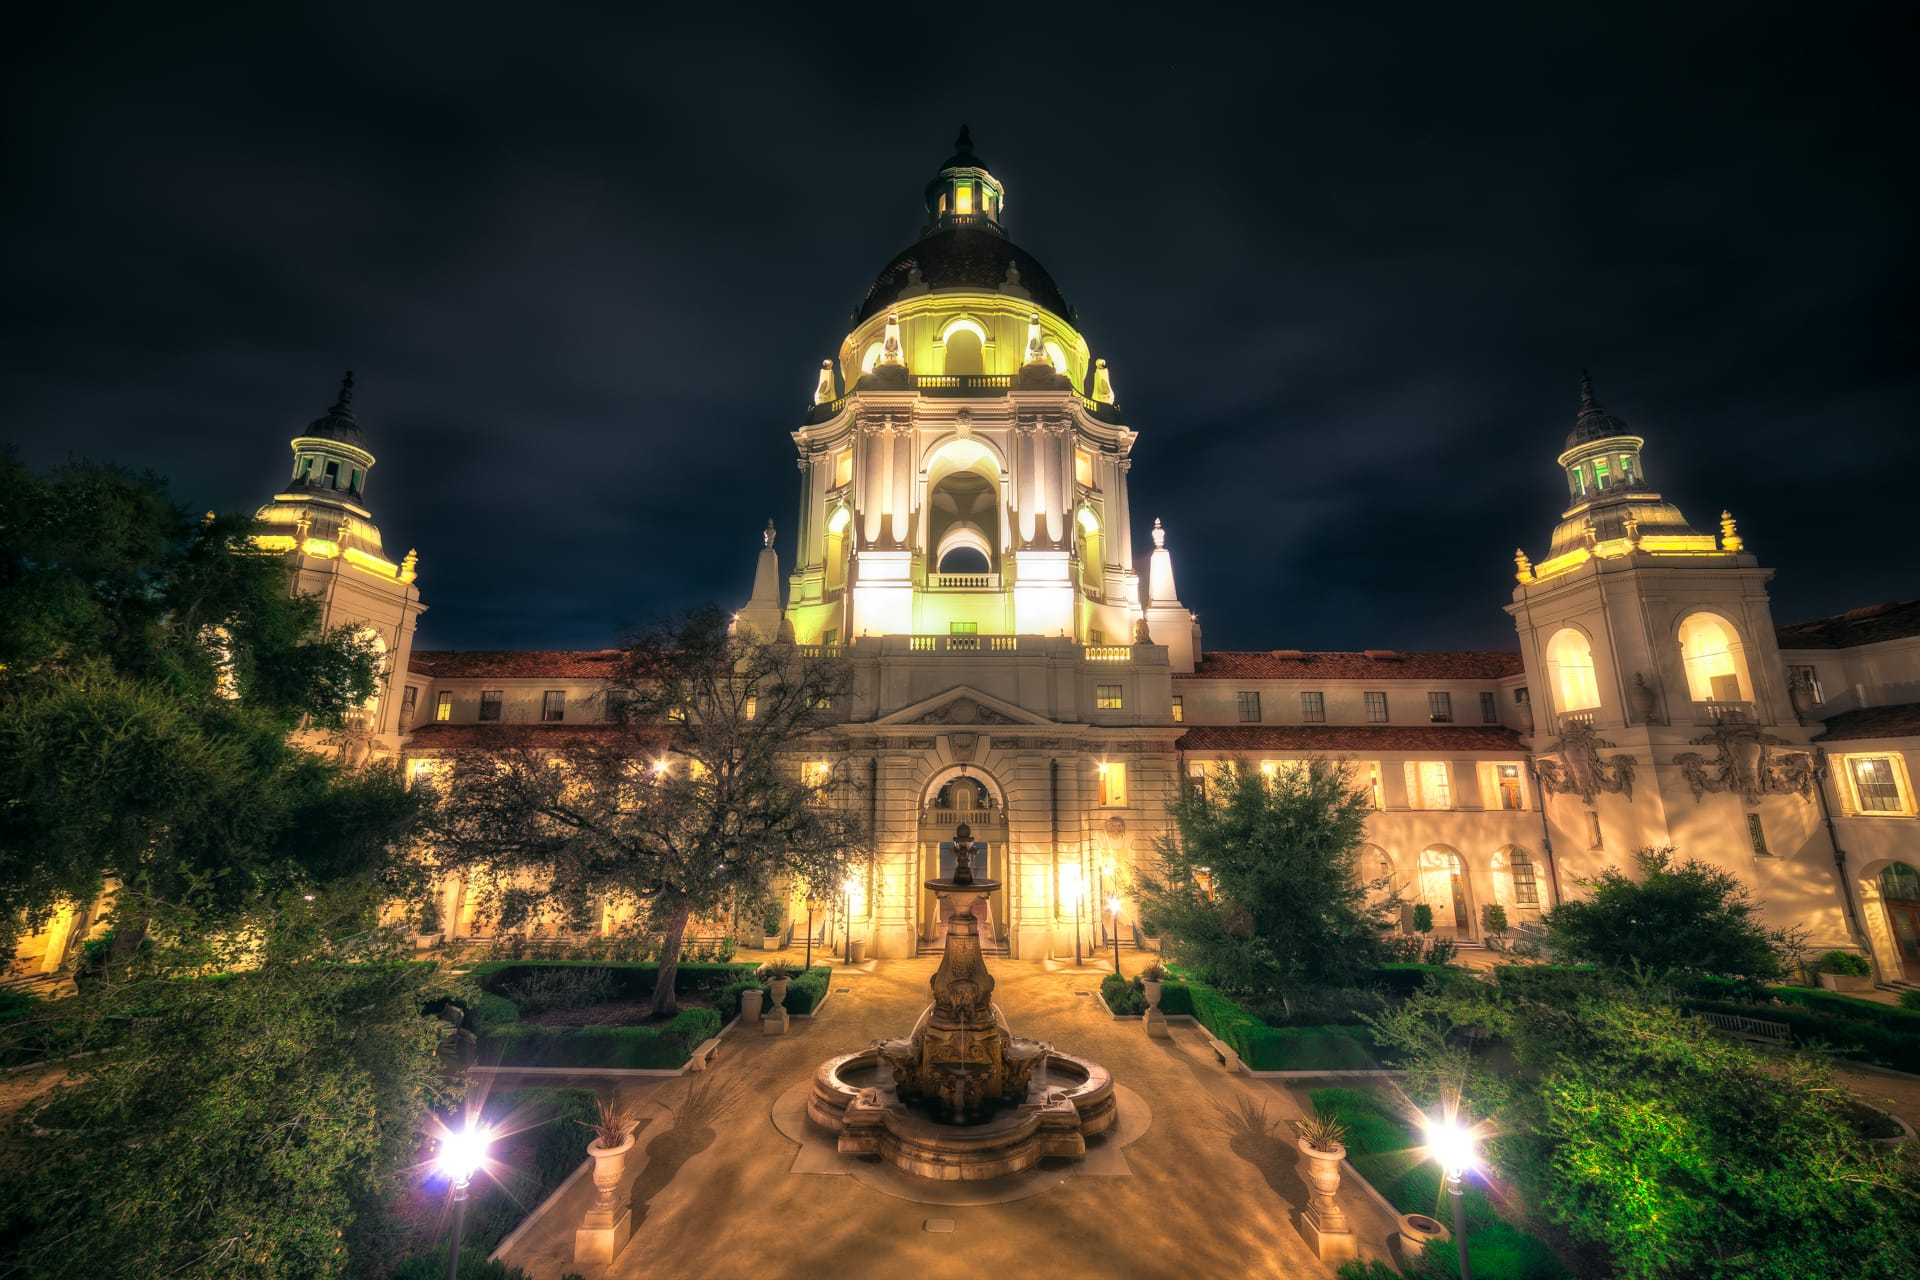 Night HDR Phot of the Pasadena City Hall